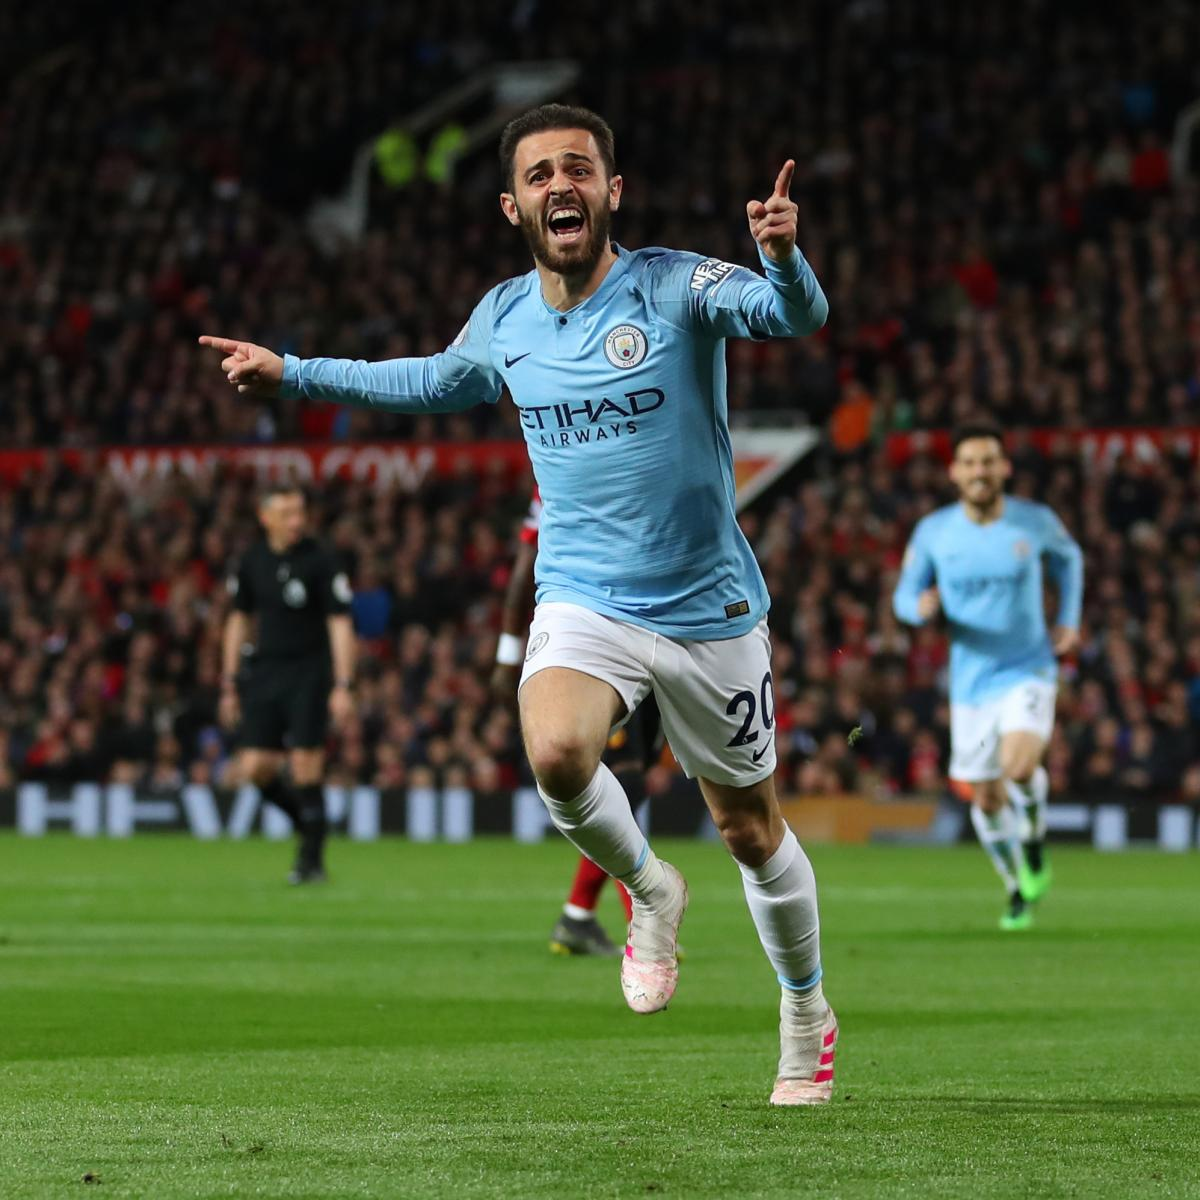 Liverpool News When Did The Premier League S Finest: EPL 100: Ranking Of Premier League's Best Players After